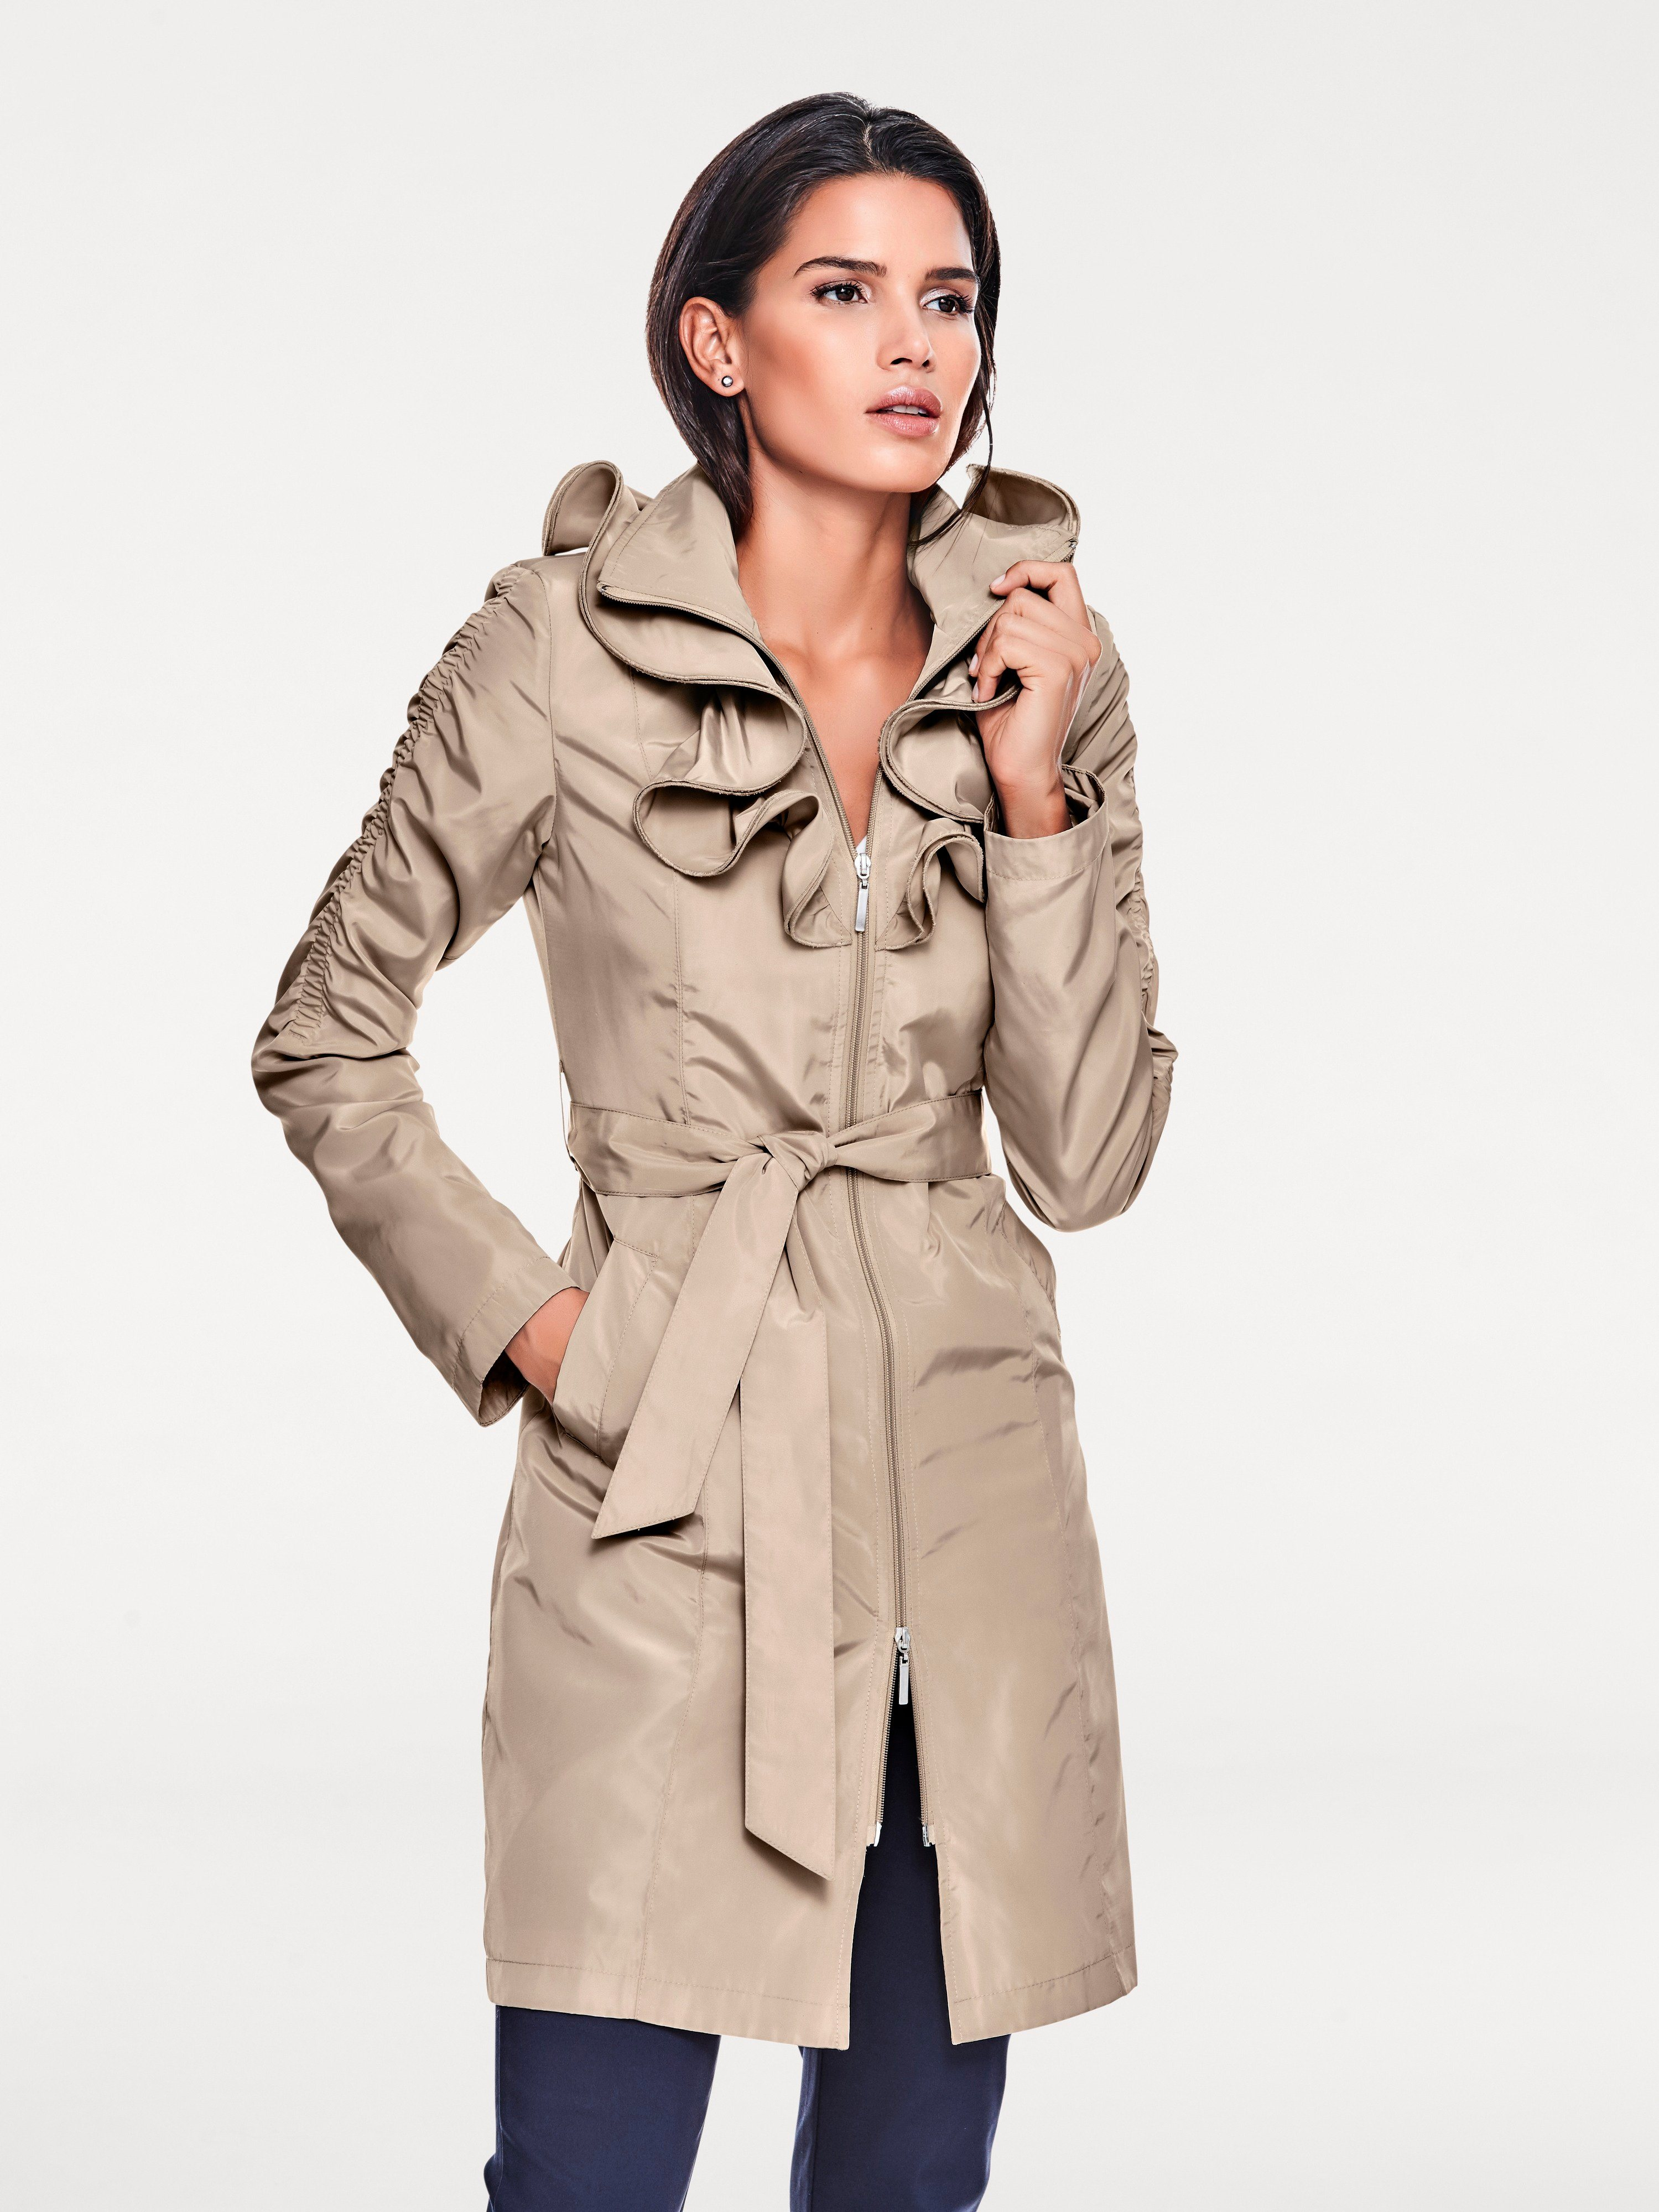 ASHLEY BROOKE by Heine Trenchcoat mit Rüschen | Bekleidung > Mäntel > Trenchcoats | Ca - Polyester | ASHLEY BROOKE by Heine